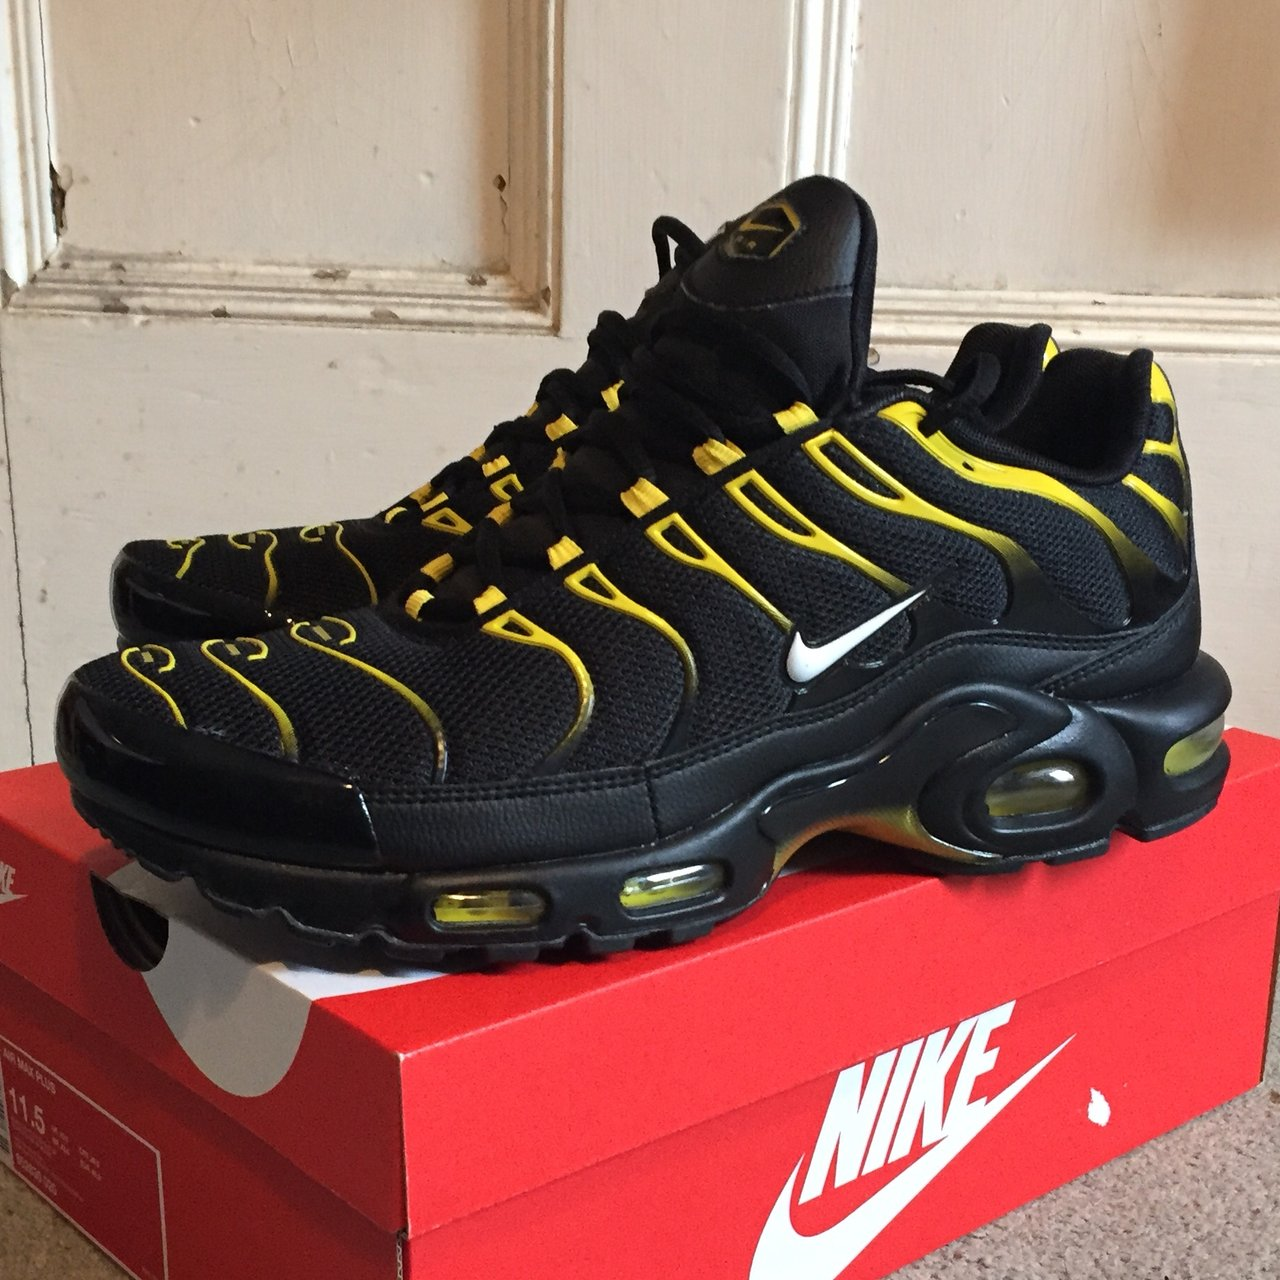 6805a2587c3 Brand new Nike Air max plus tn black and yellow uk 10.5. fit - Depop